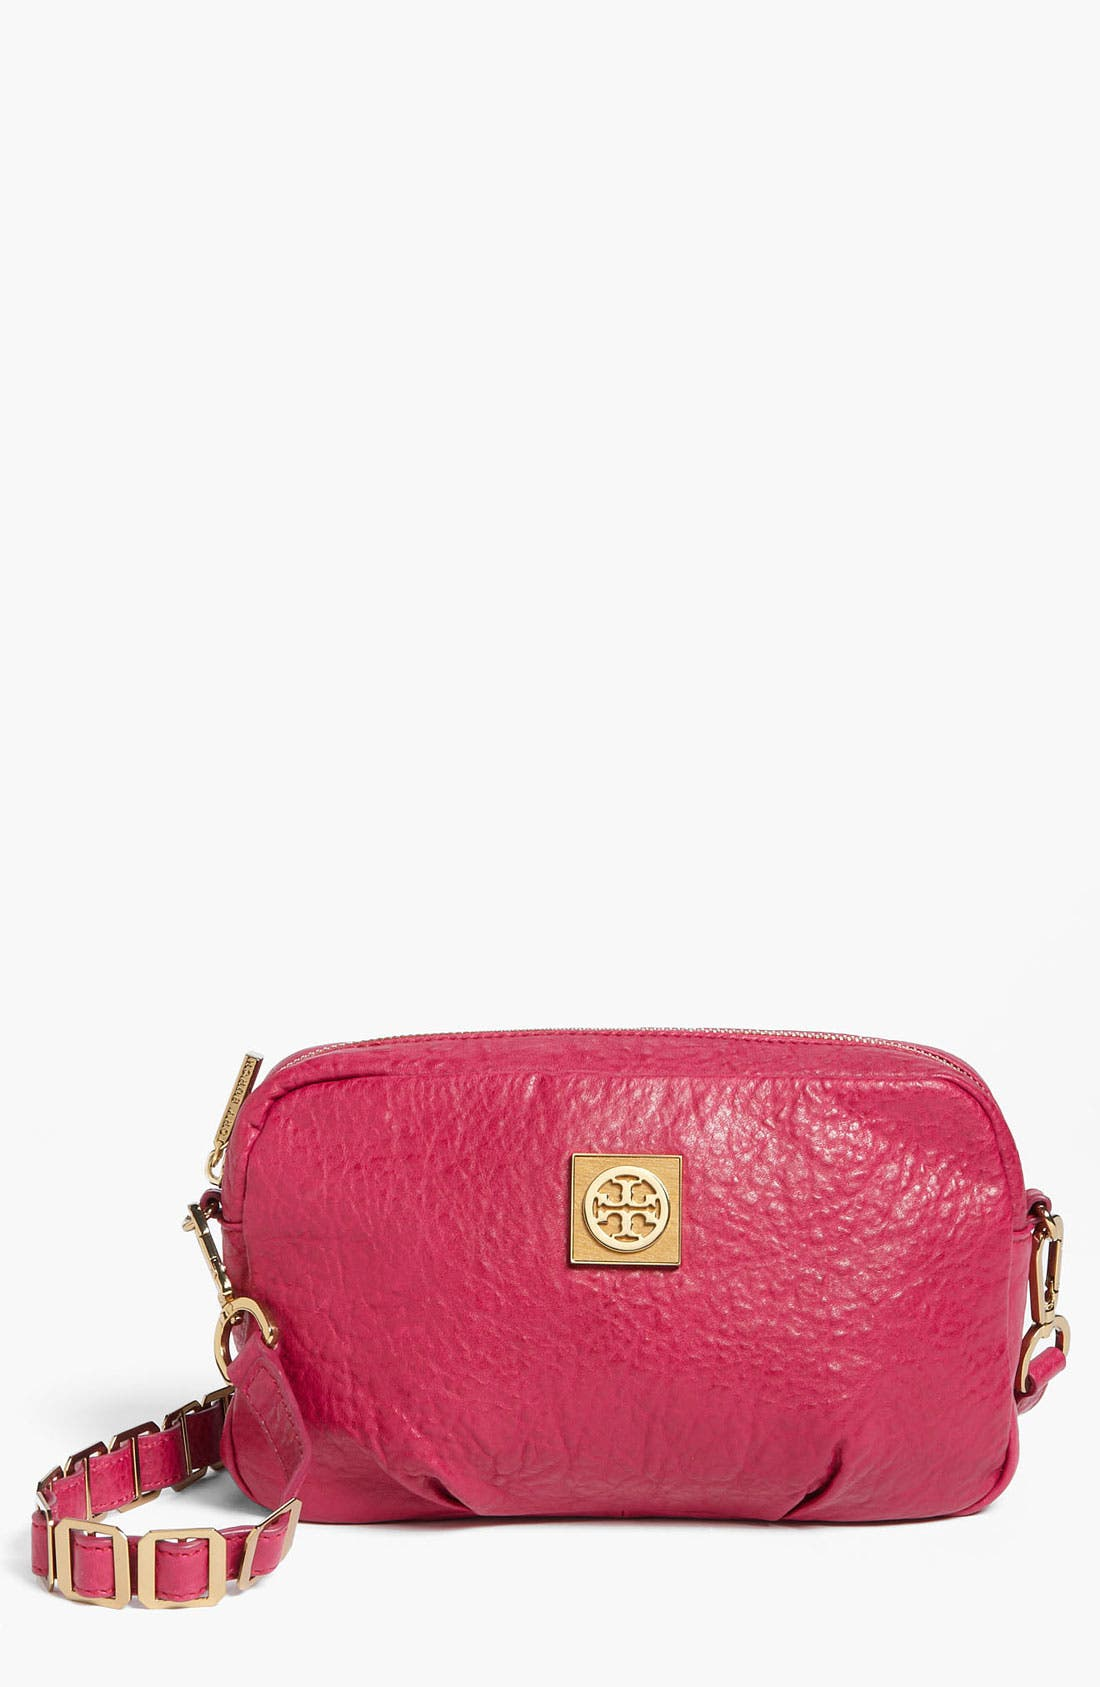 Alternate Image 1 Selected - Tory Burch 'Louiisa - Mini' Crossbody Bag